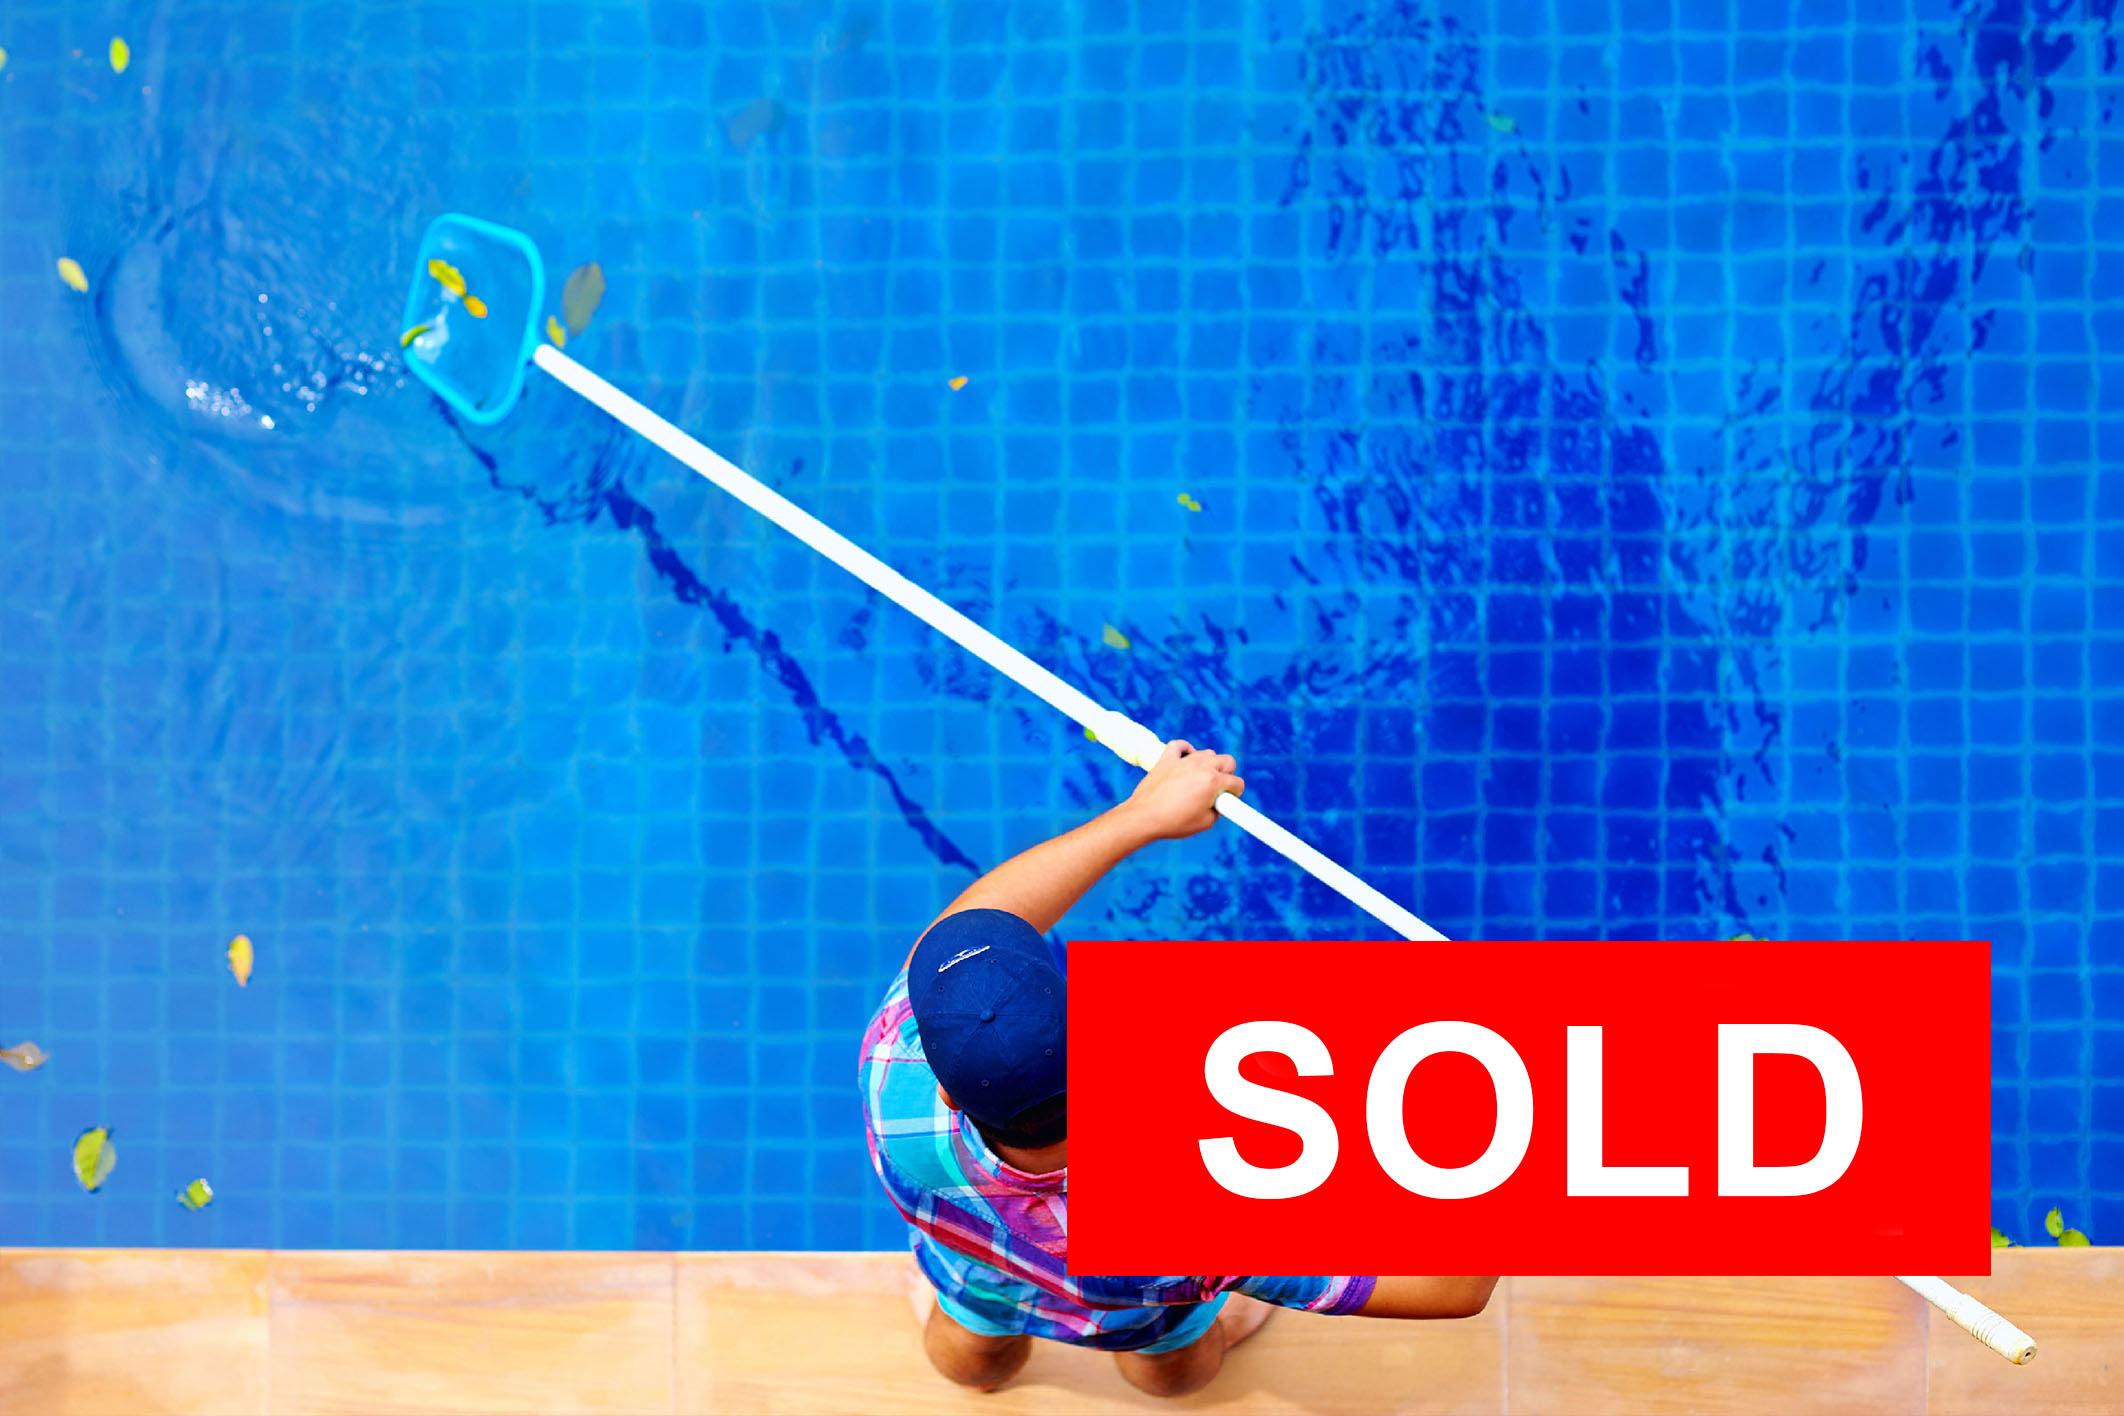 pool-900-600-sold